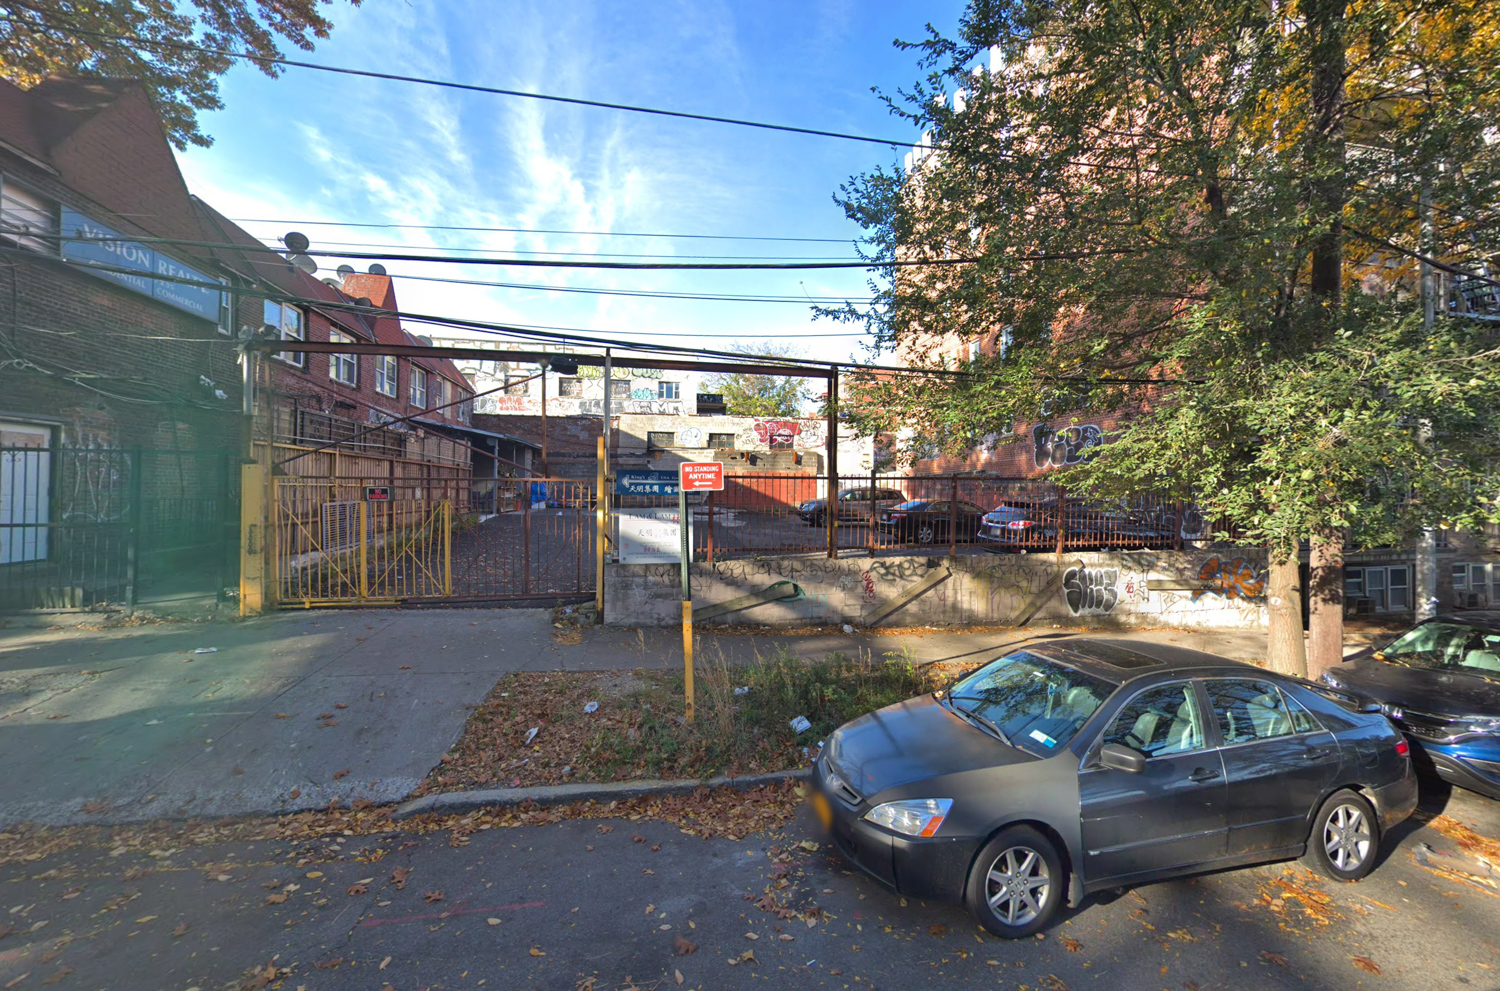 39-14 114th Street, via Google Maps